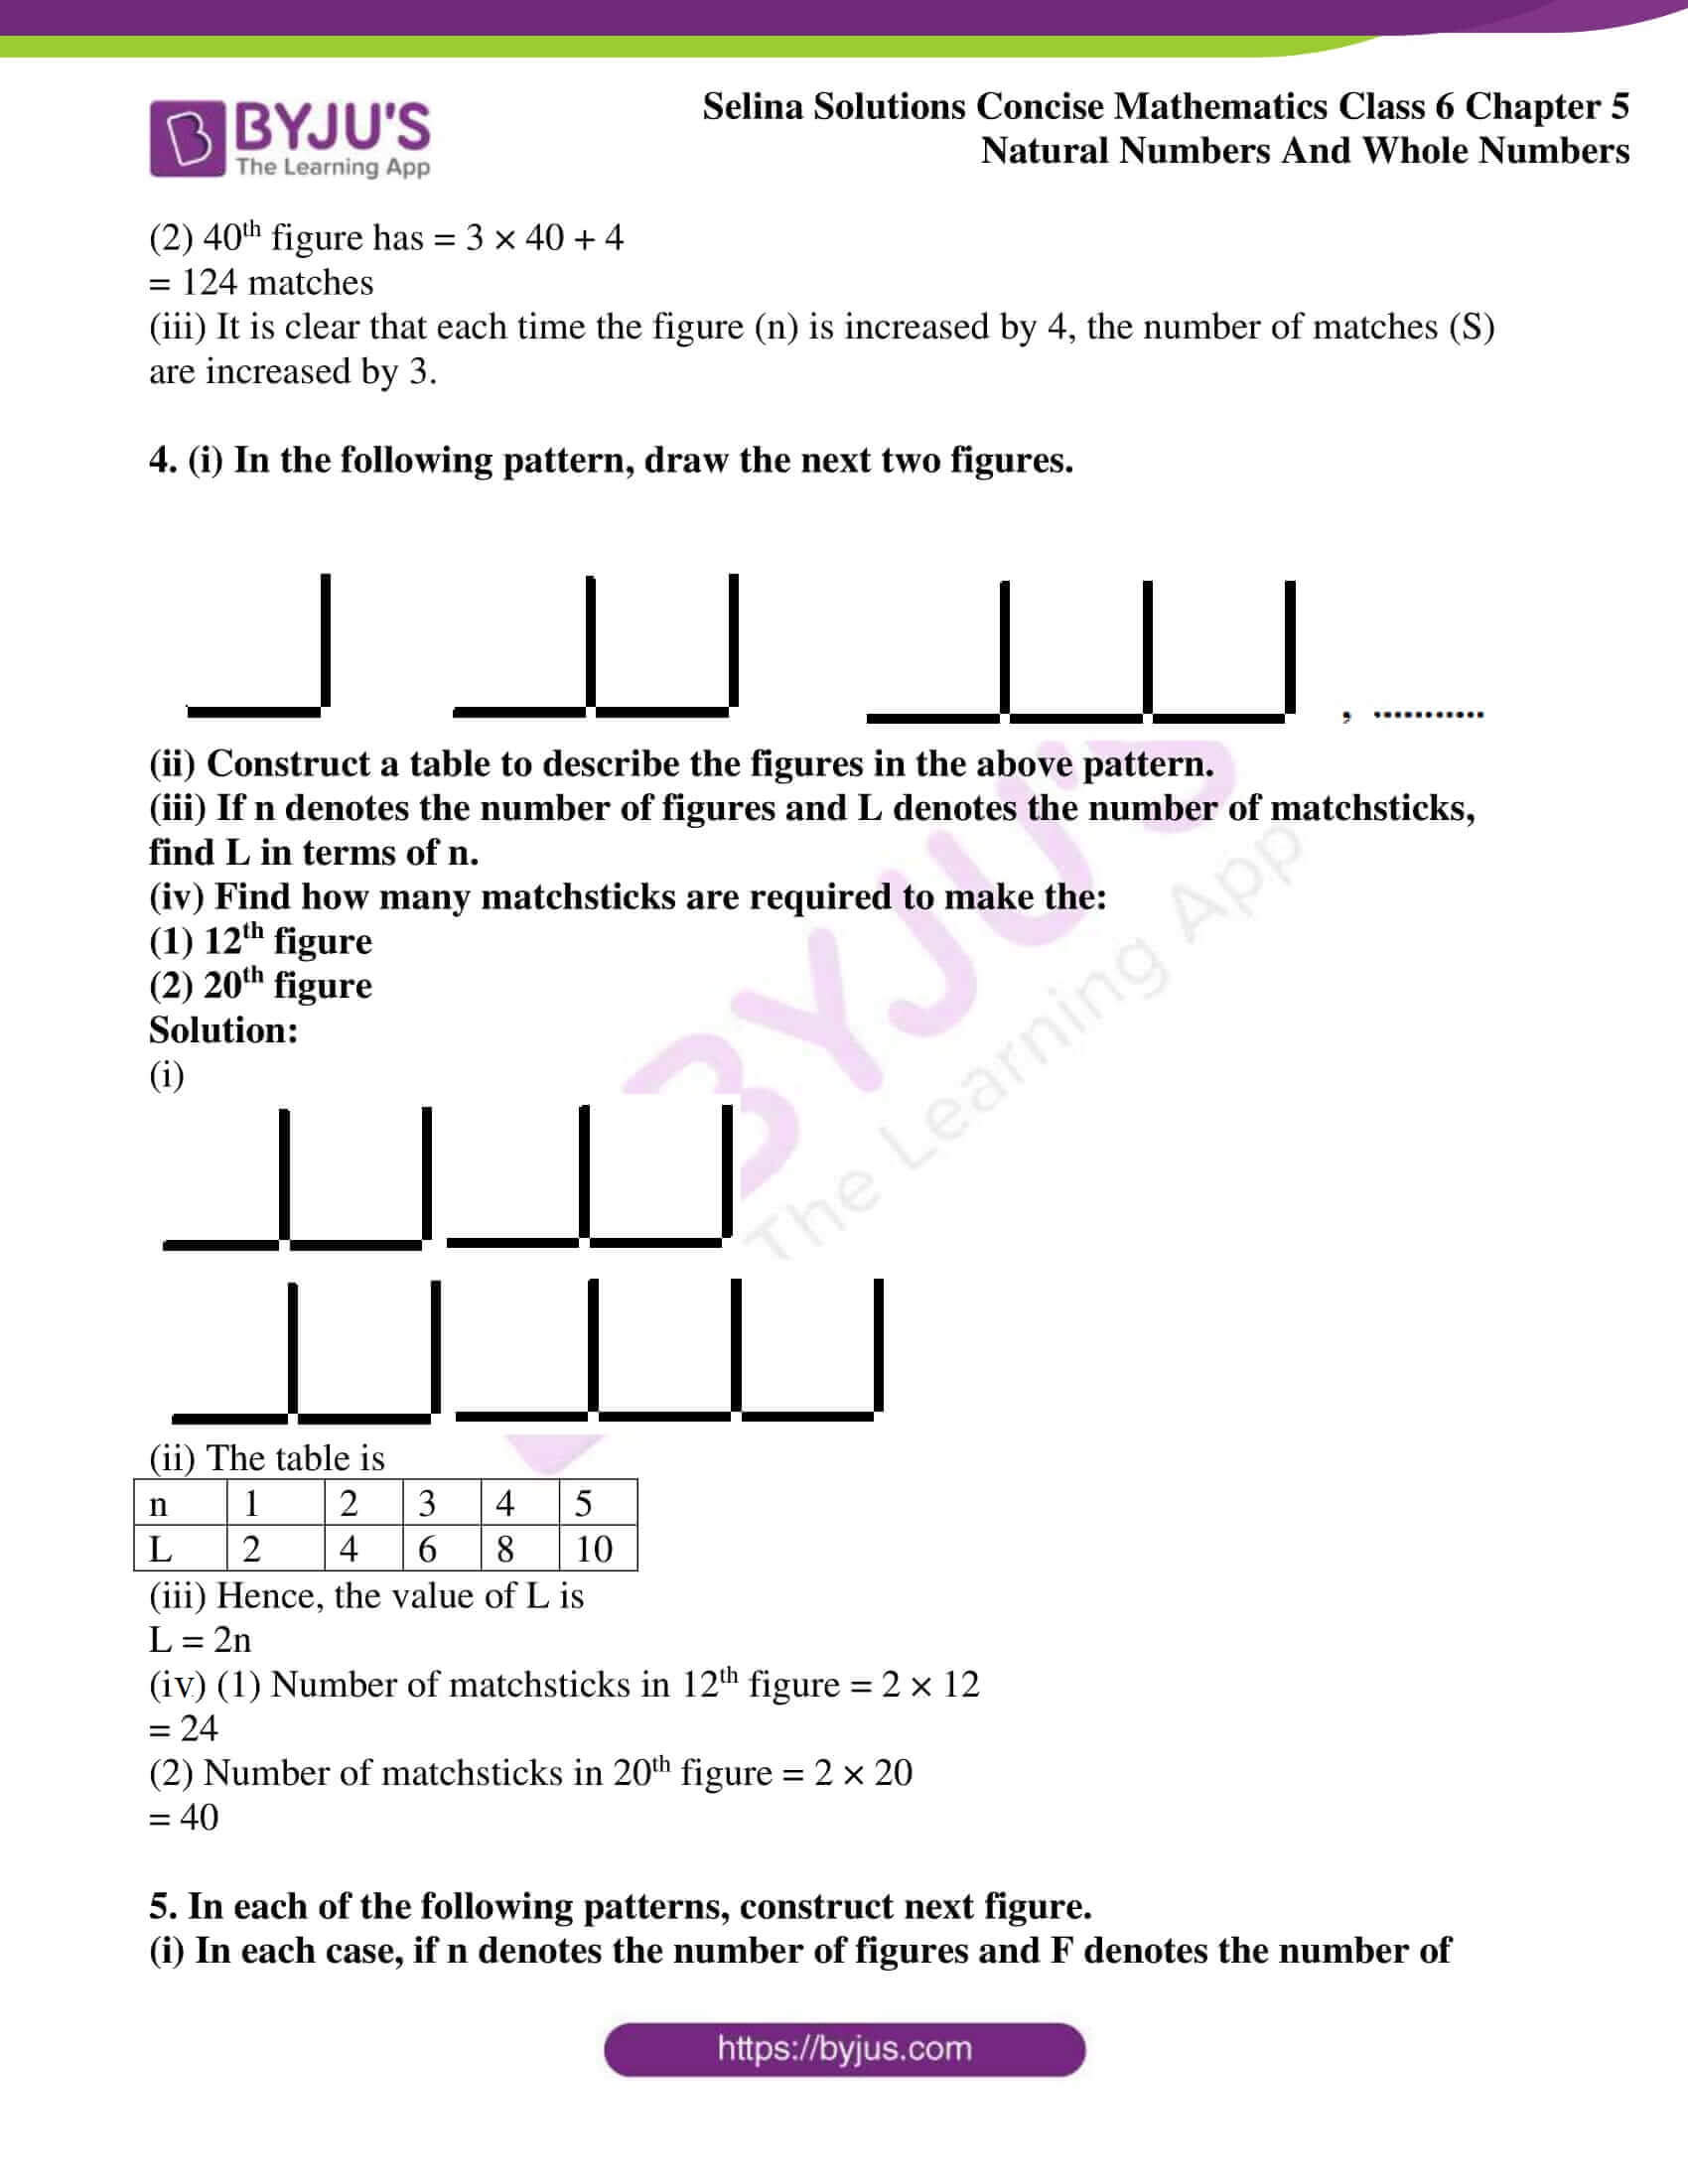 selina sol concise maths class 6 ch5 ex 5f 5